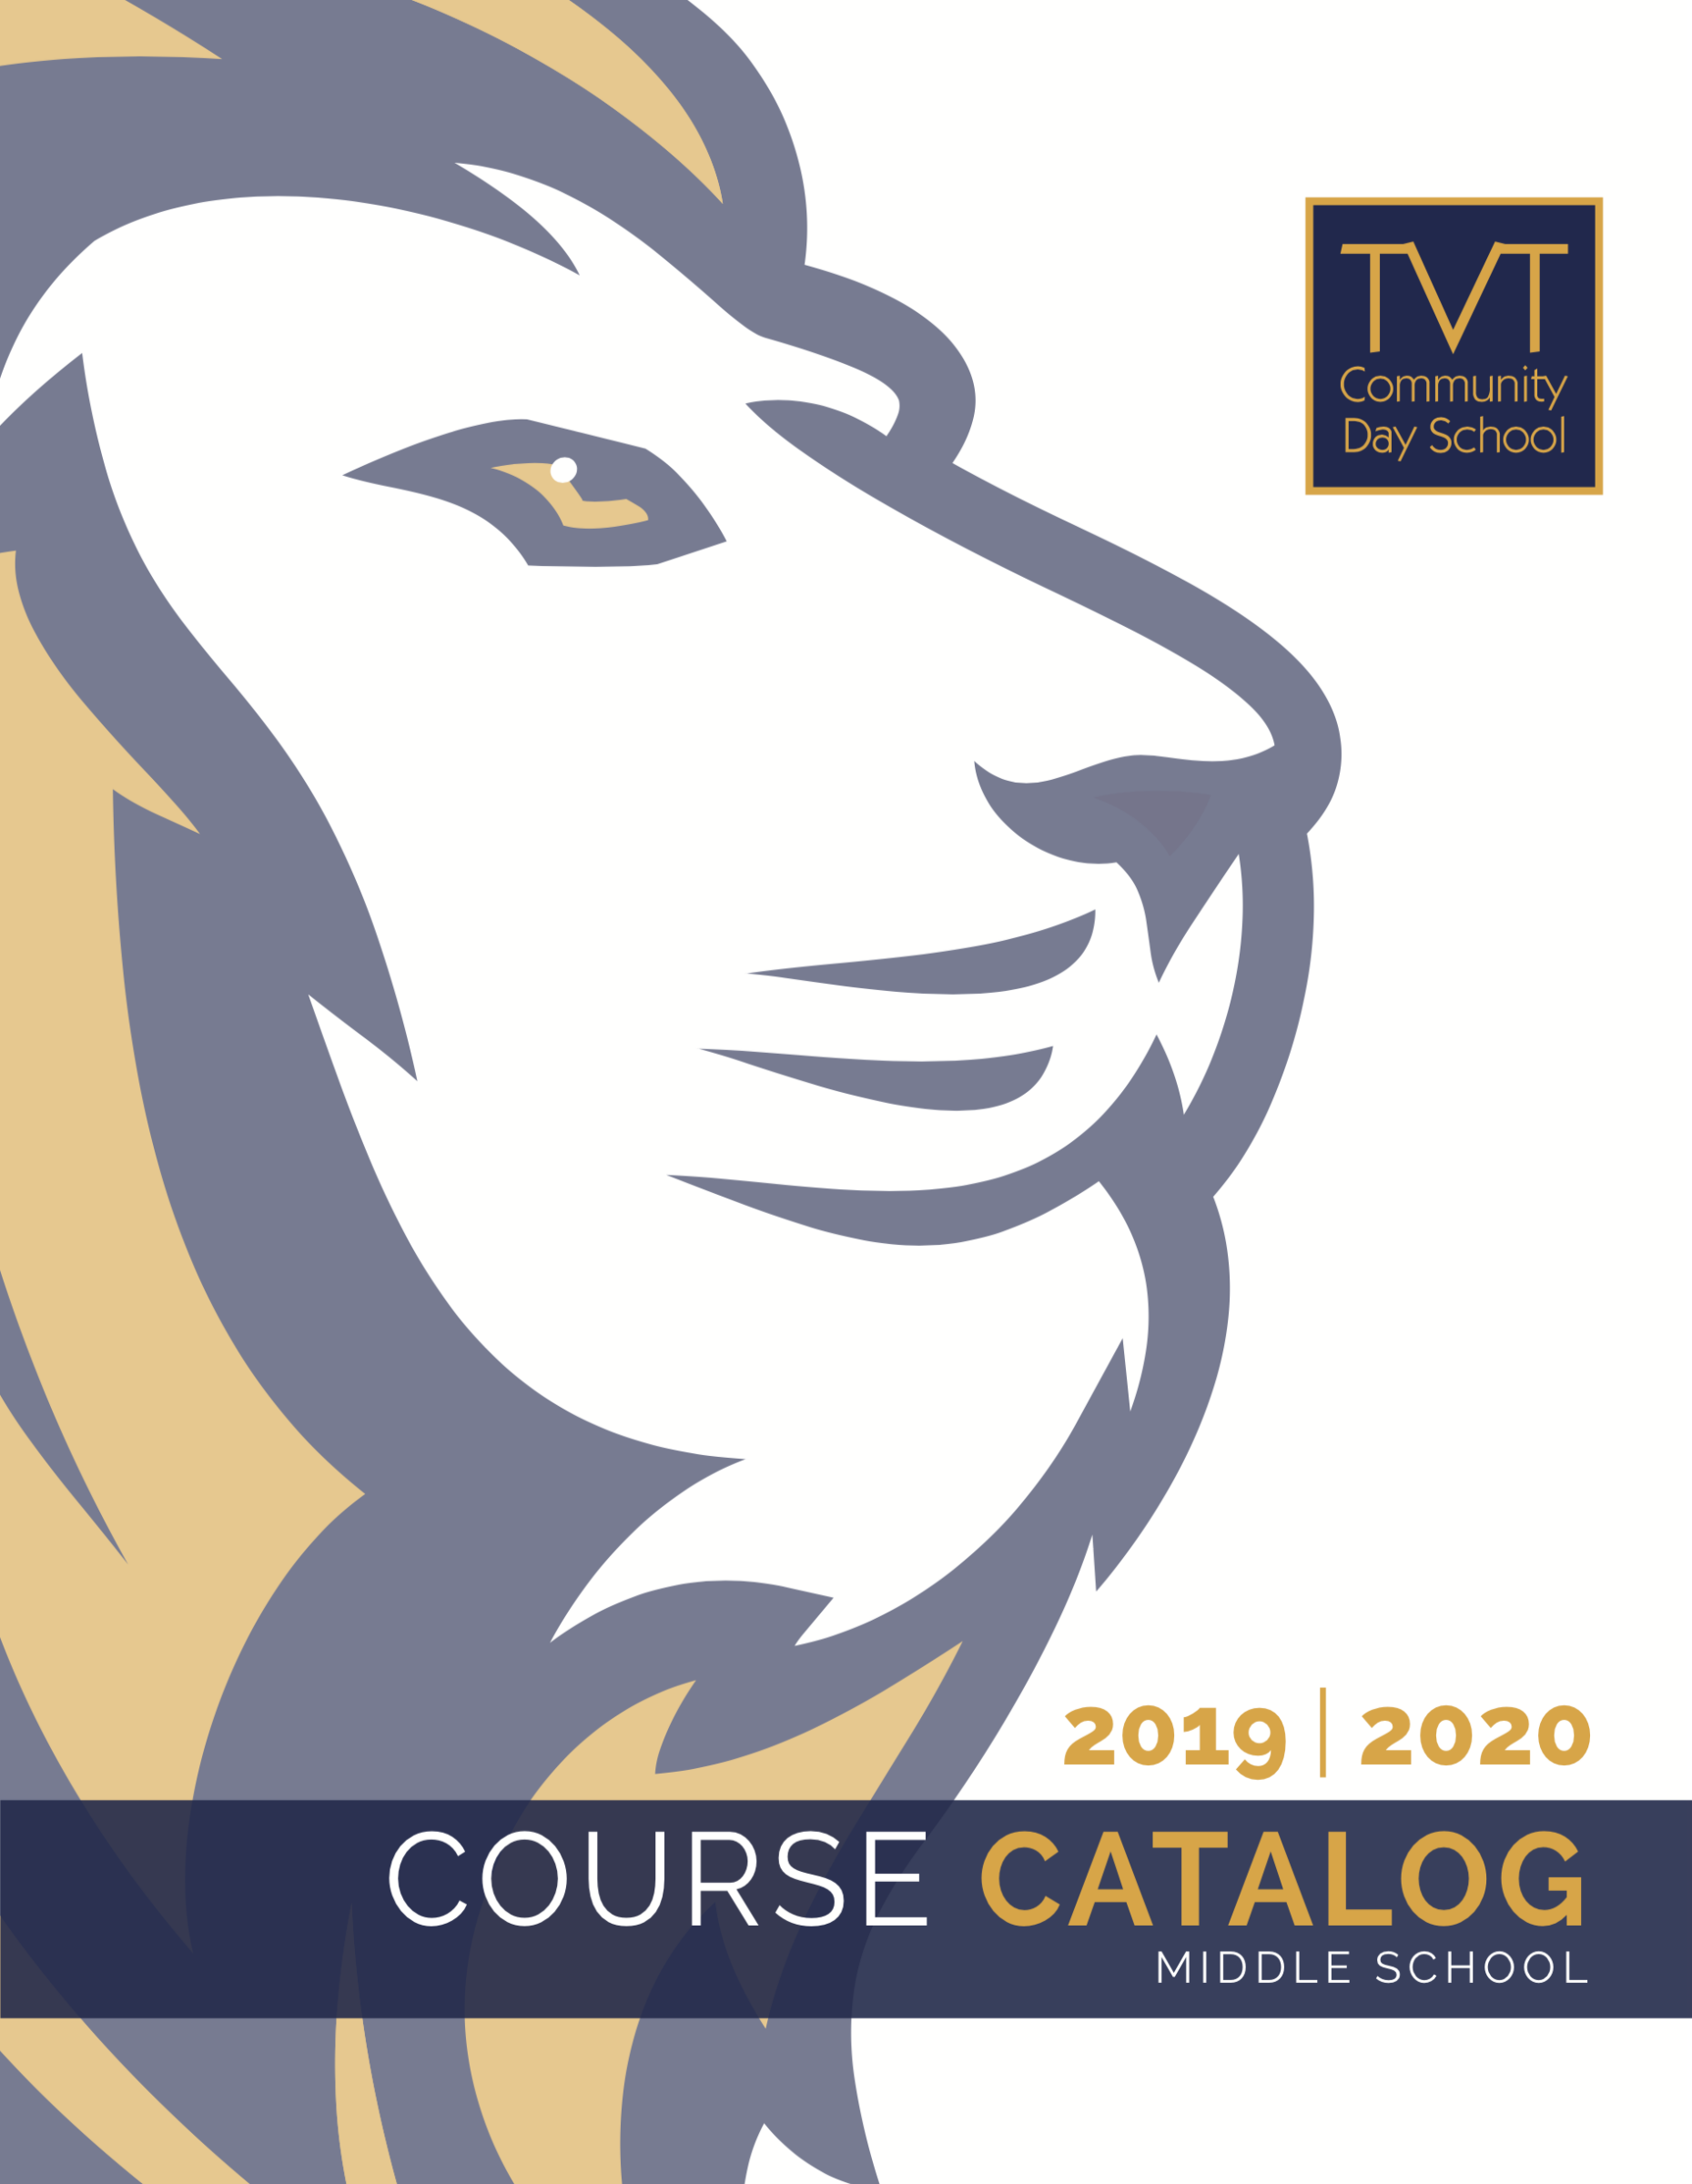 Download the Middle School Course Catalog